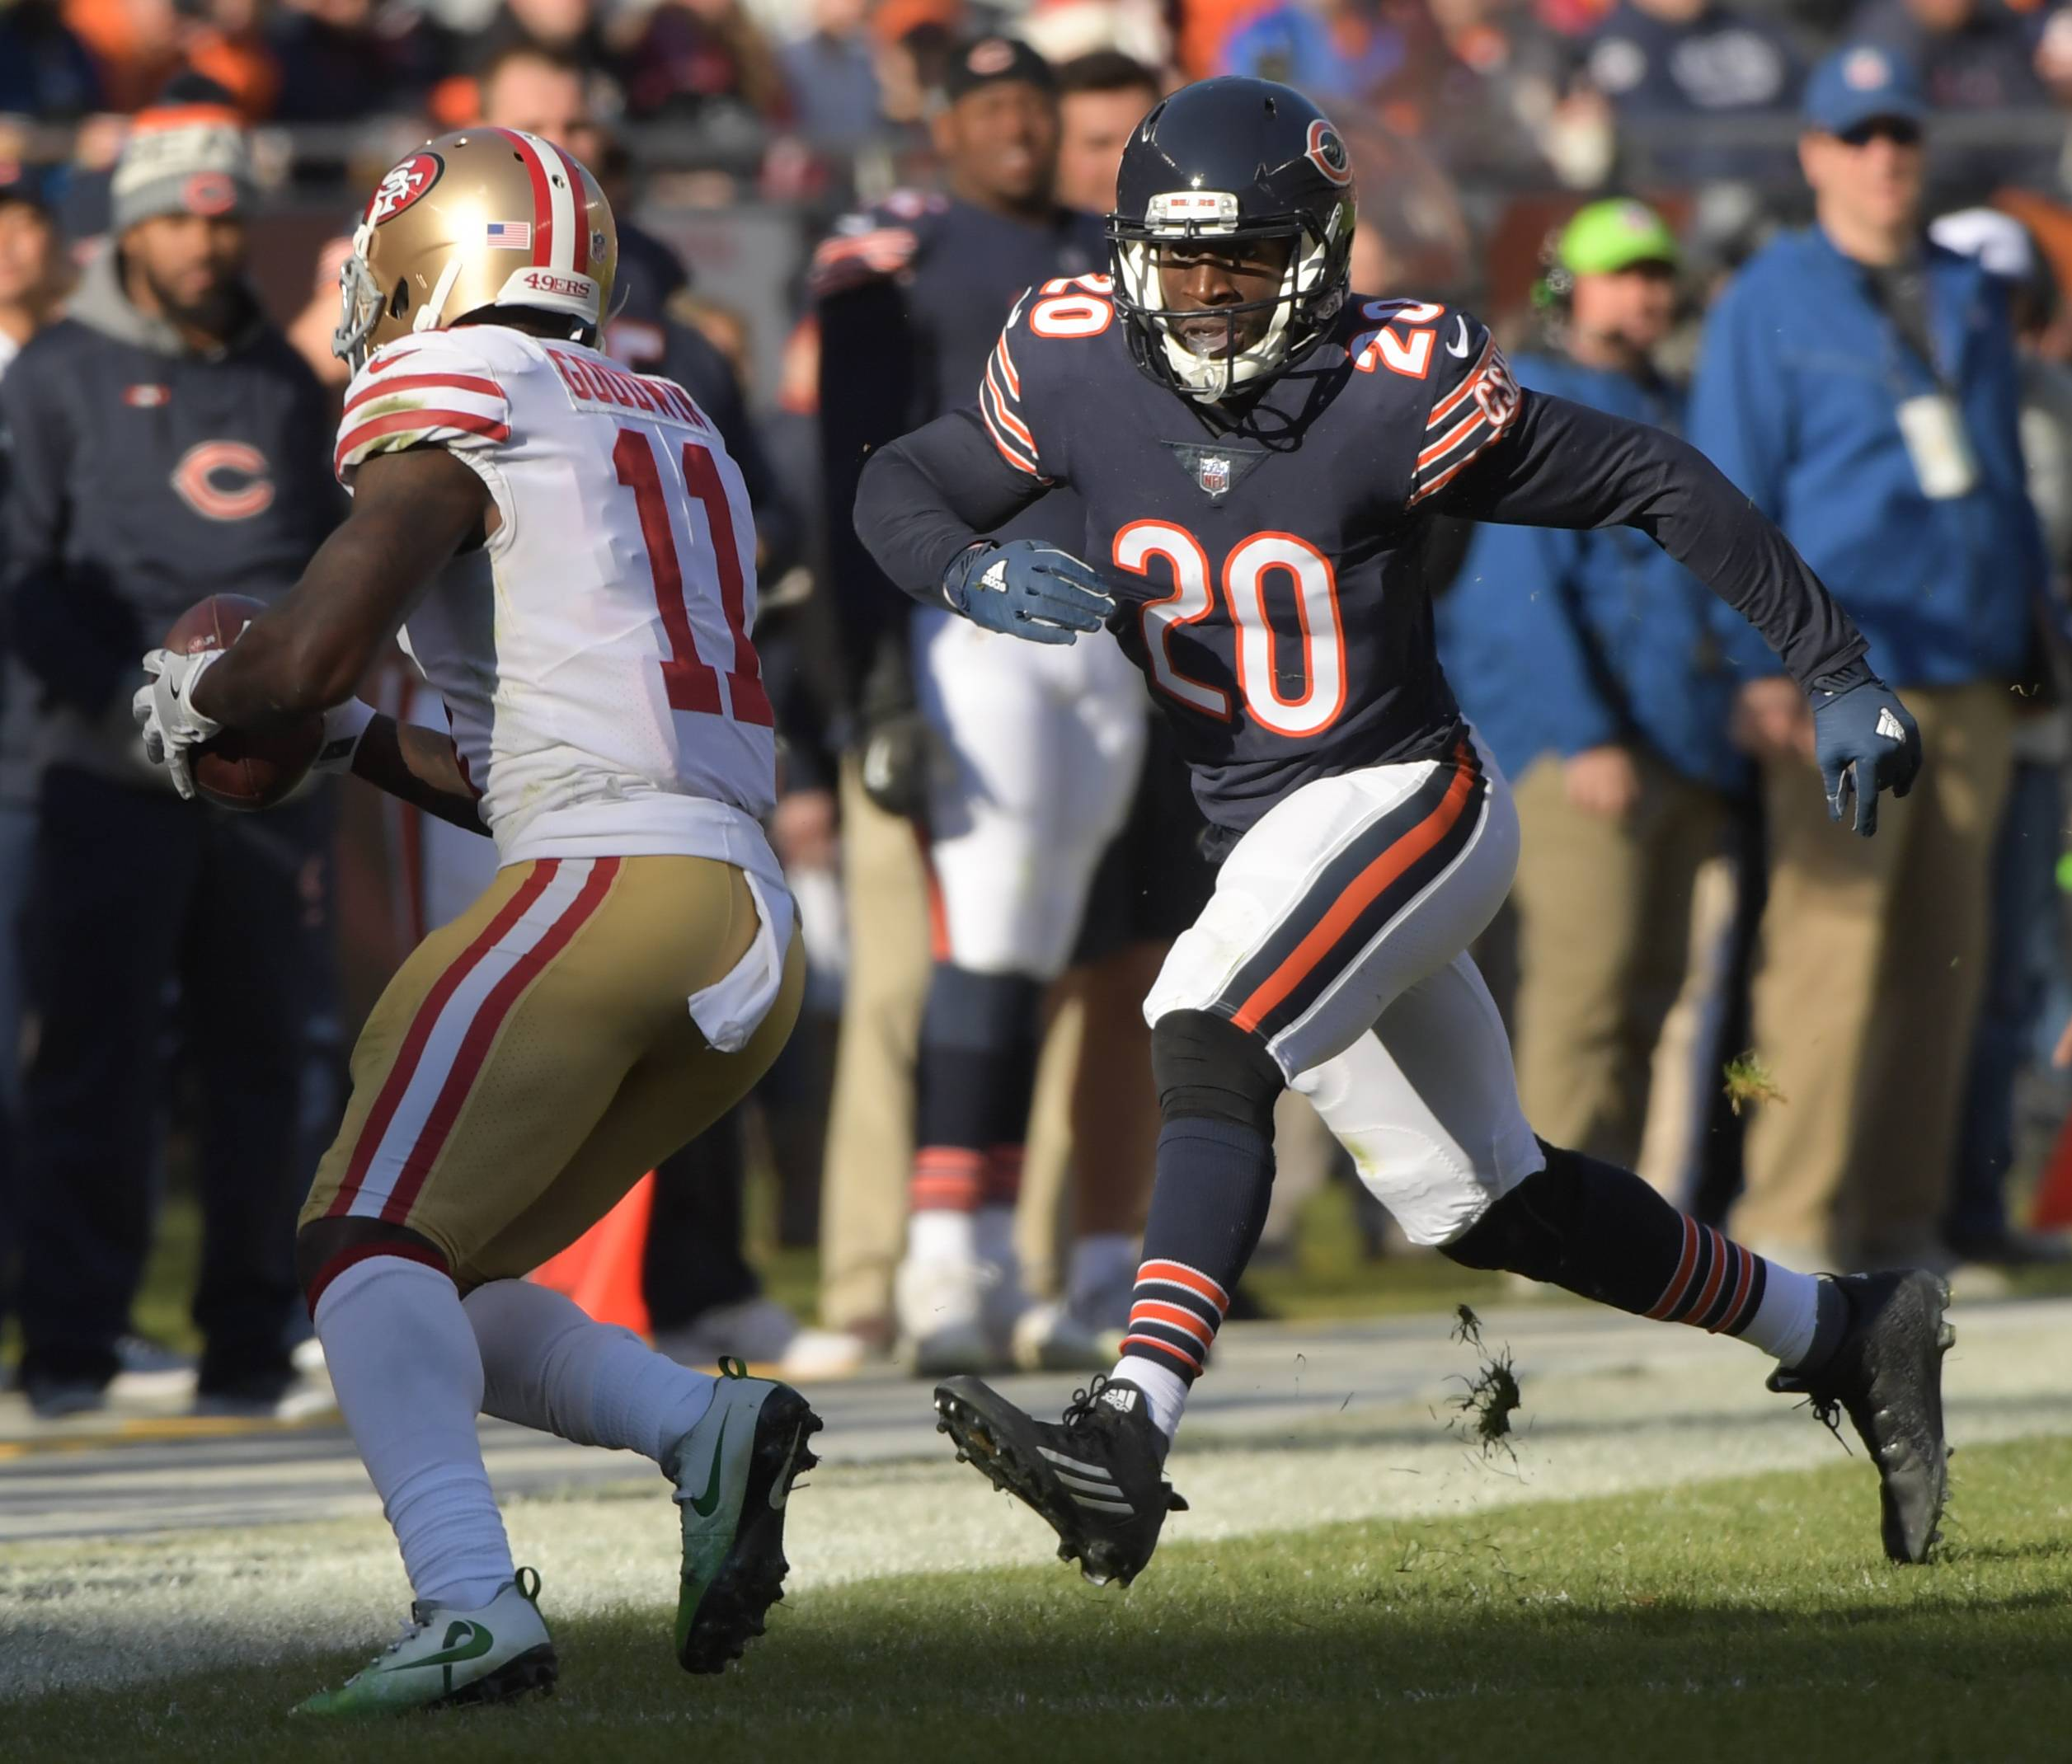 Cornerback Prince Amukamara, who started 12 games for the Bears last season, has reached a deal to return to the team.